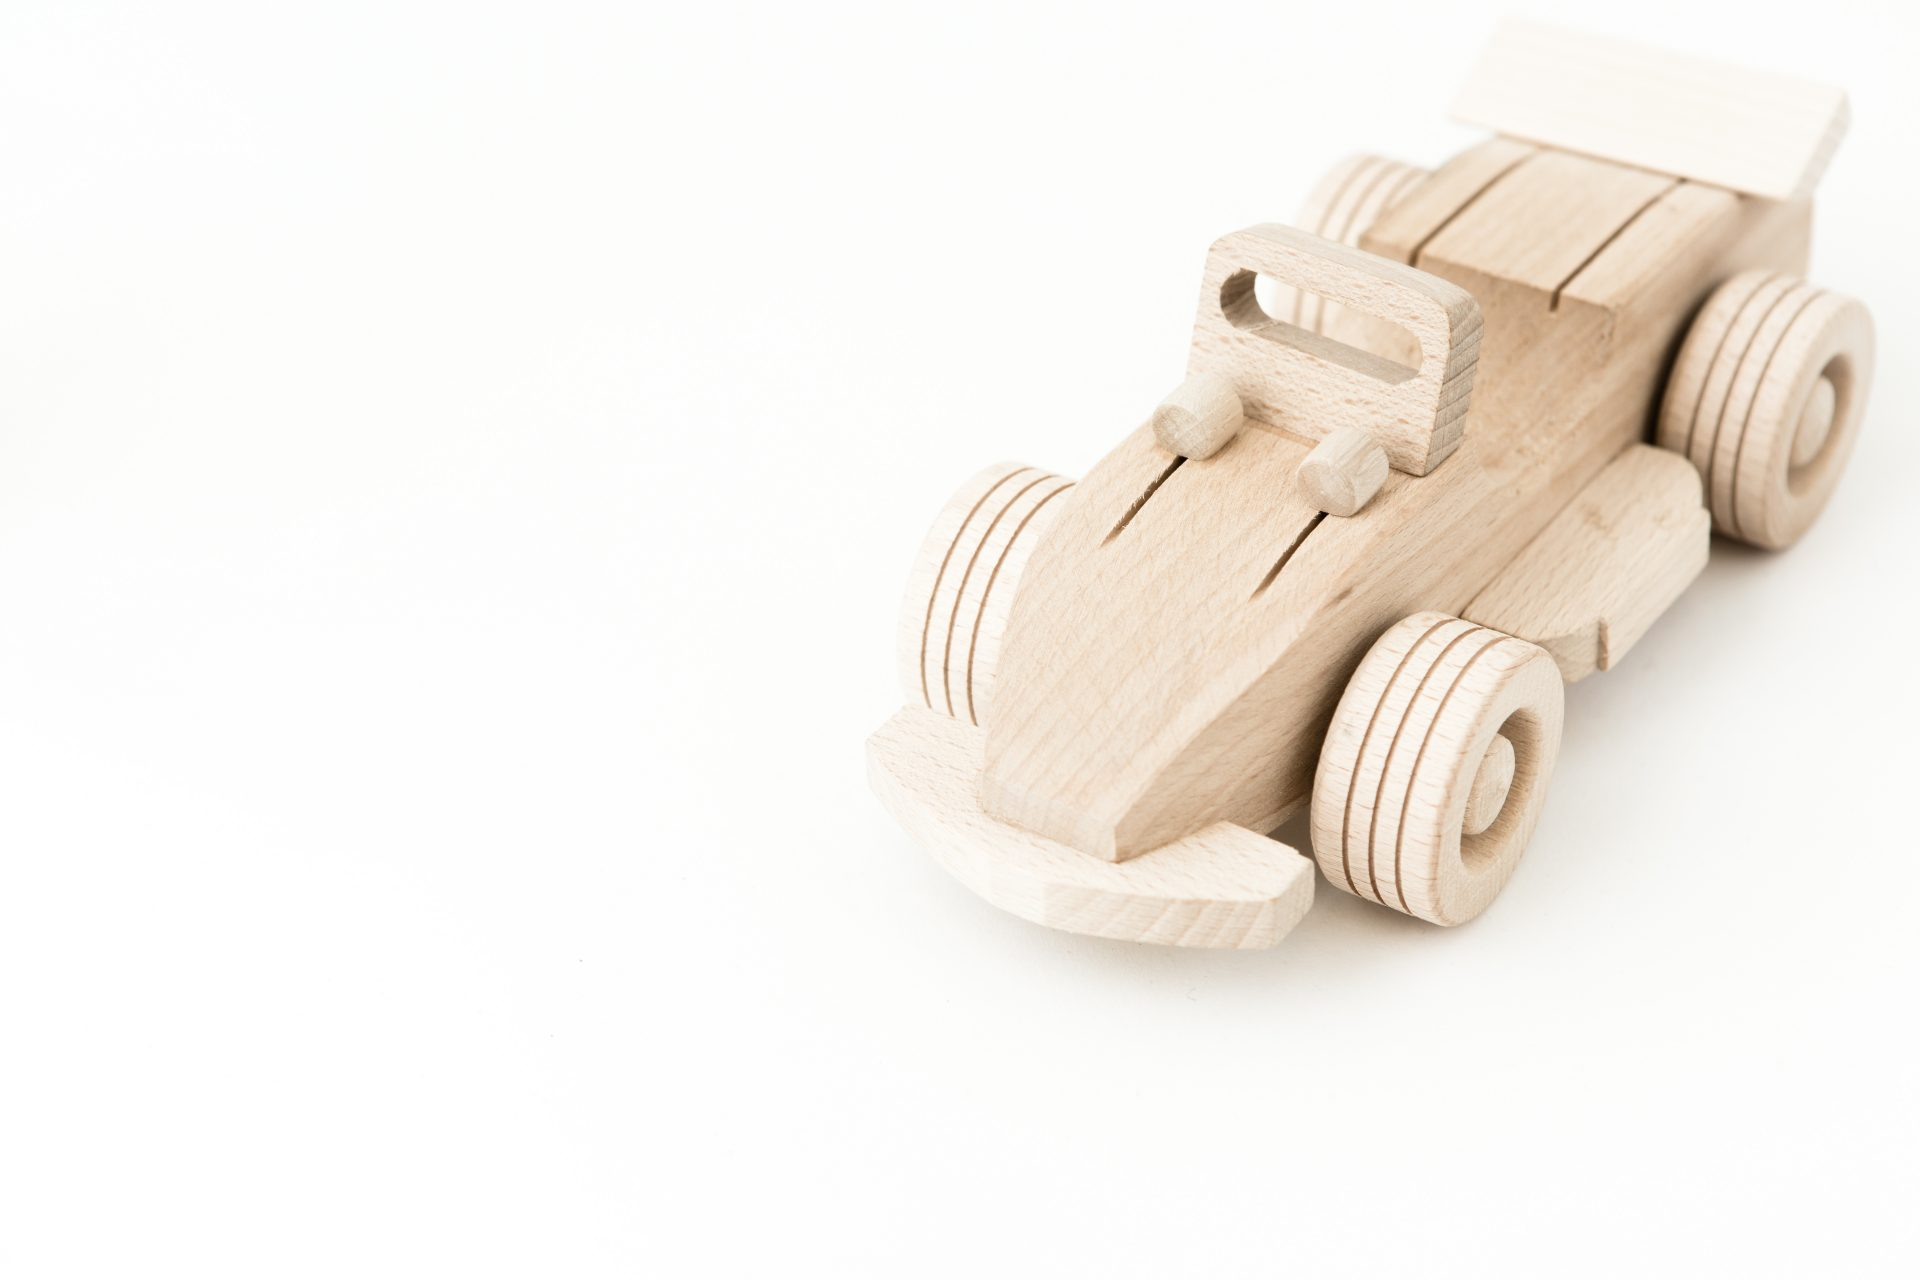 Wooden Toys JPEGS-4